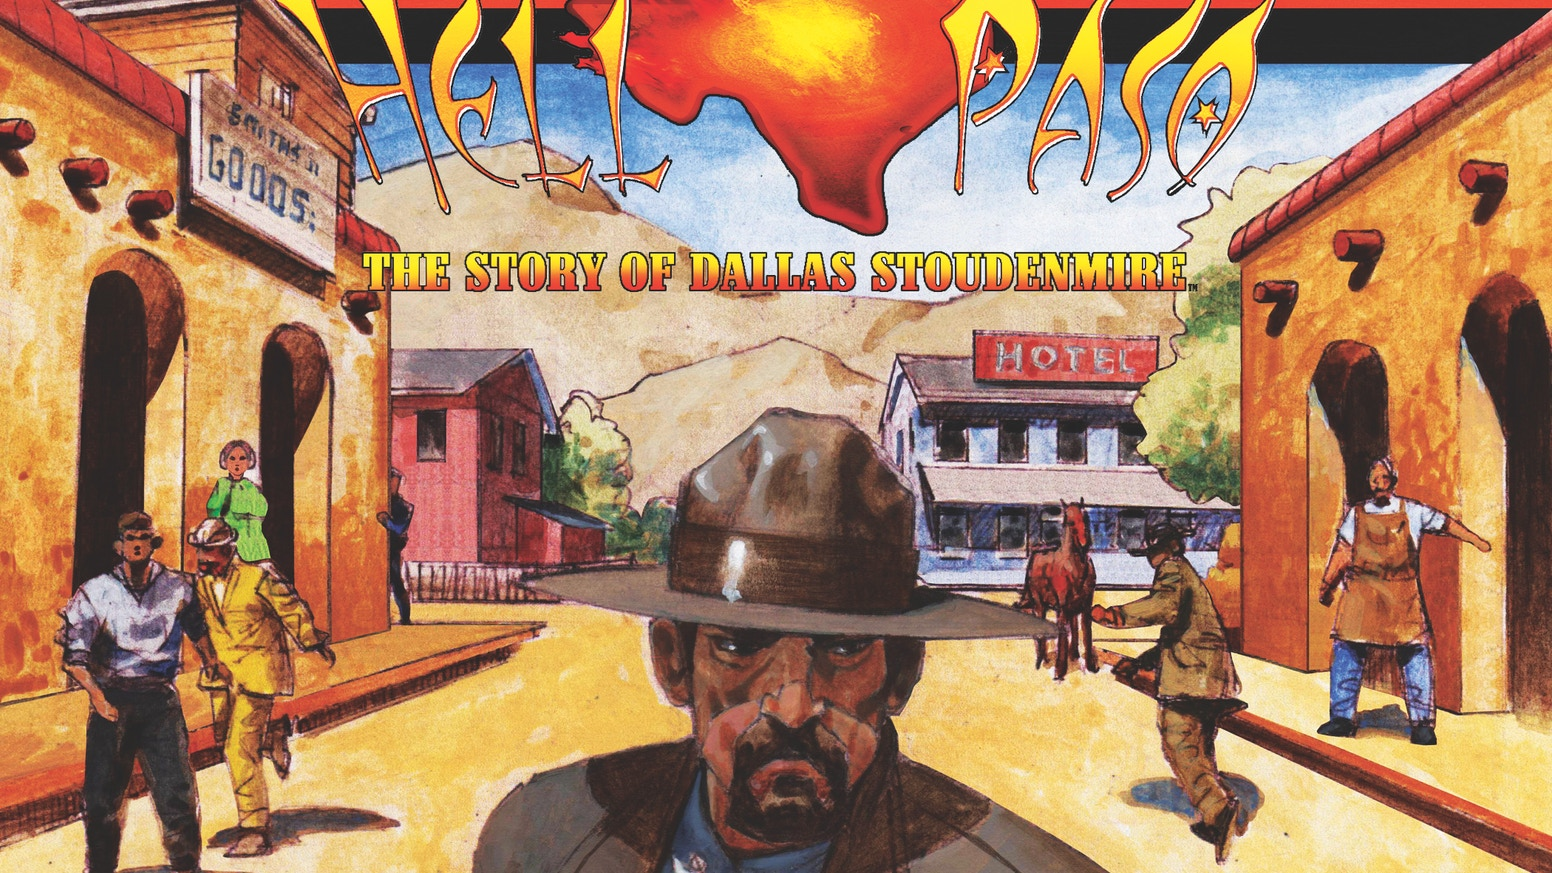 Based on the true, violent story of Marshal Dallas Stoudenmire, and his fight to enforce the law in El Paso, Texas, from 1881-1882.